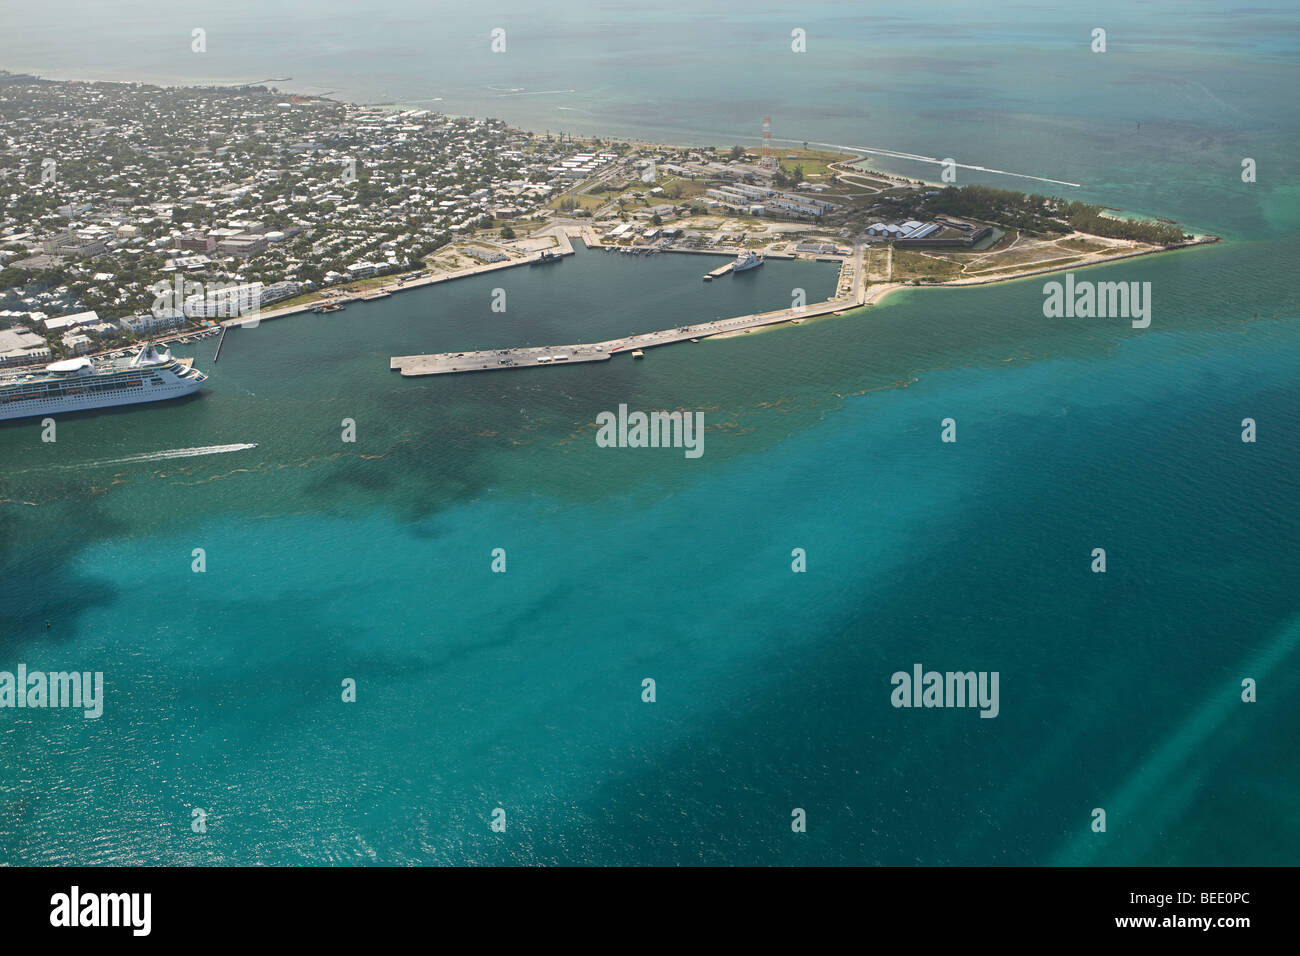 Aerial photo of Key West, Fort Zachary Taylor Historic State Park and sea port - Stock Image